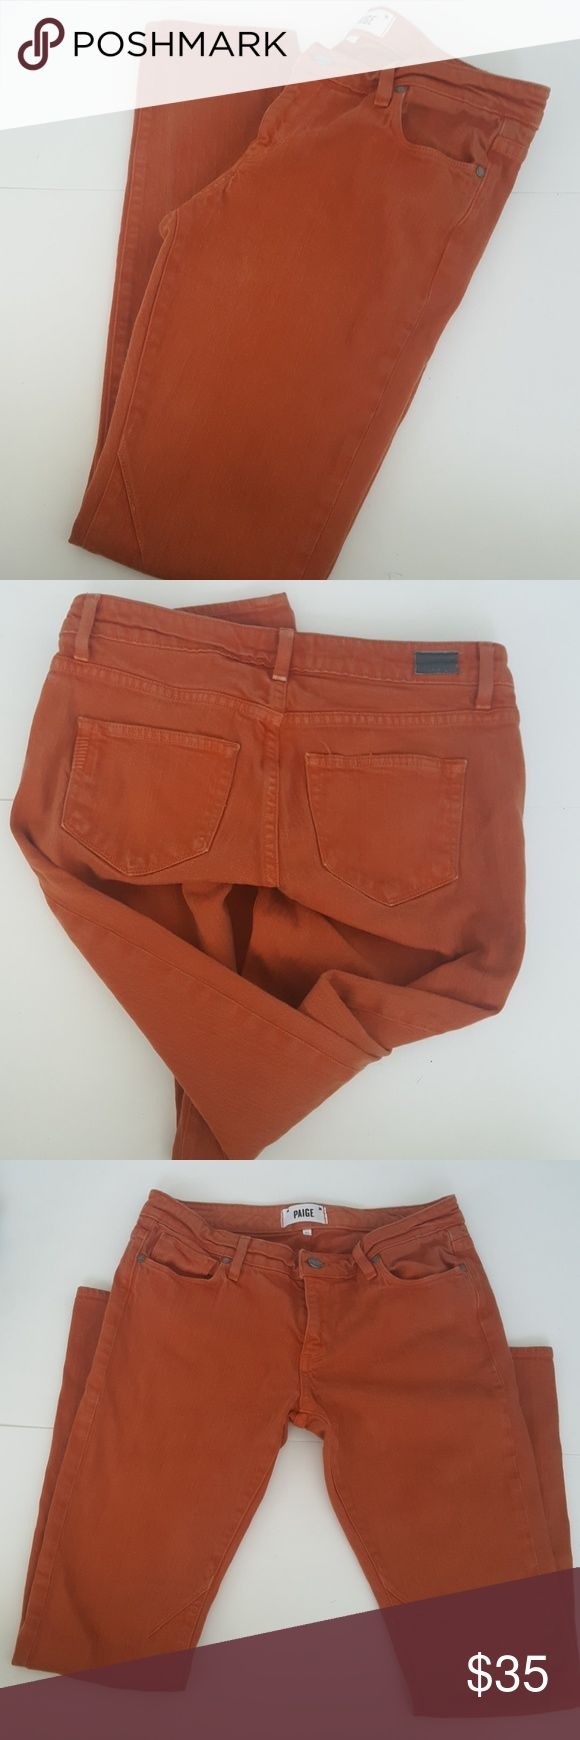 """Paige Troy Boy Dark Orange Skinny Jeans As pictured- darts at inseam. Waist 14 1/2"""" Rise 8"""" Inseam 29 1/2"""" In great pre-loved condition Paige Jeans Jeans Skinny"""